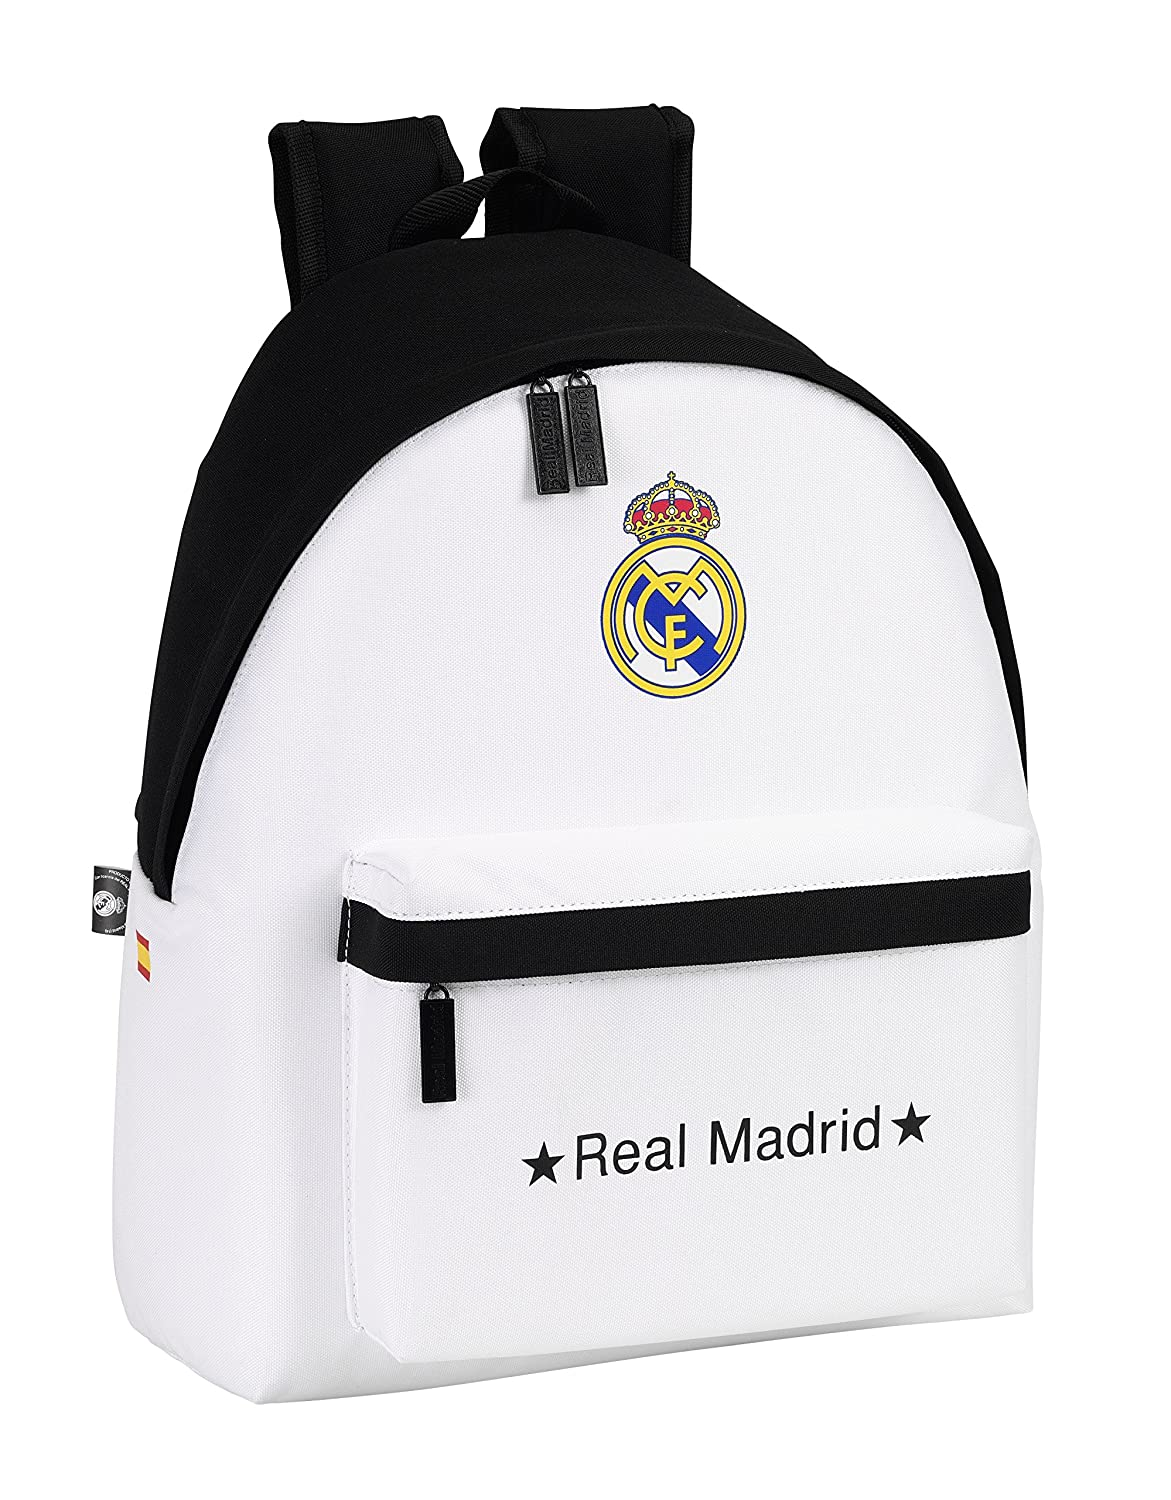 Real Madrid - Mochila, 32 x 40 cm, Color Blanco (SAFTA 641526774): Amazon.es: Equipaje